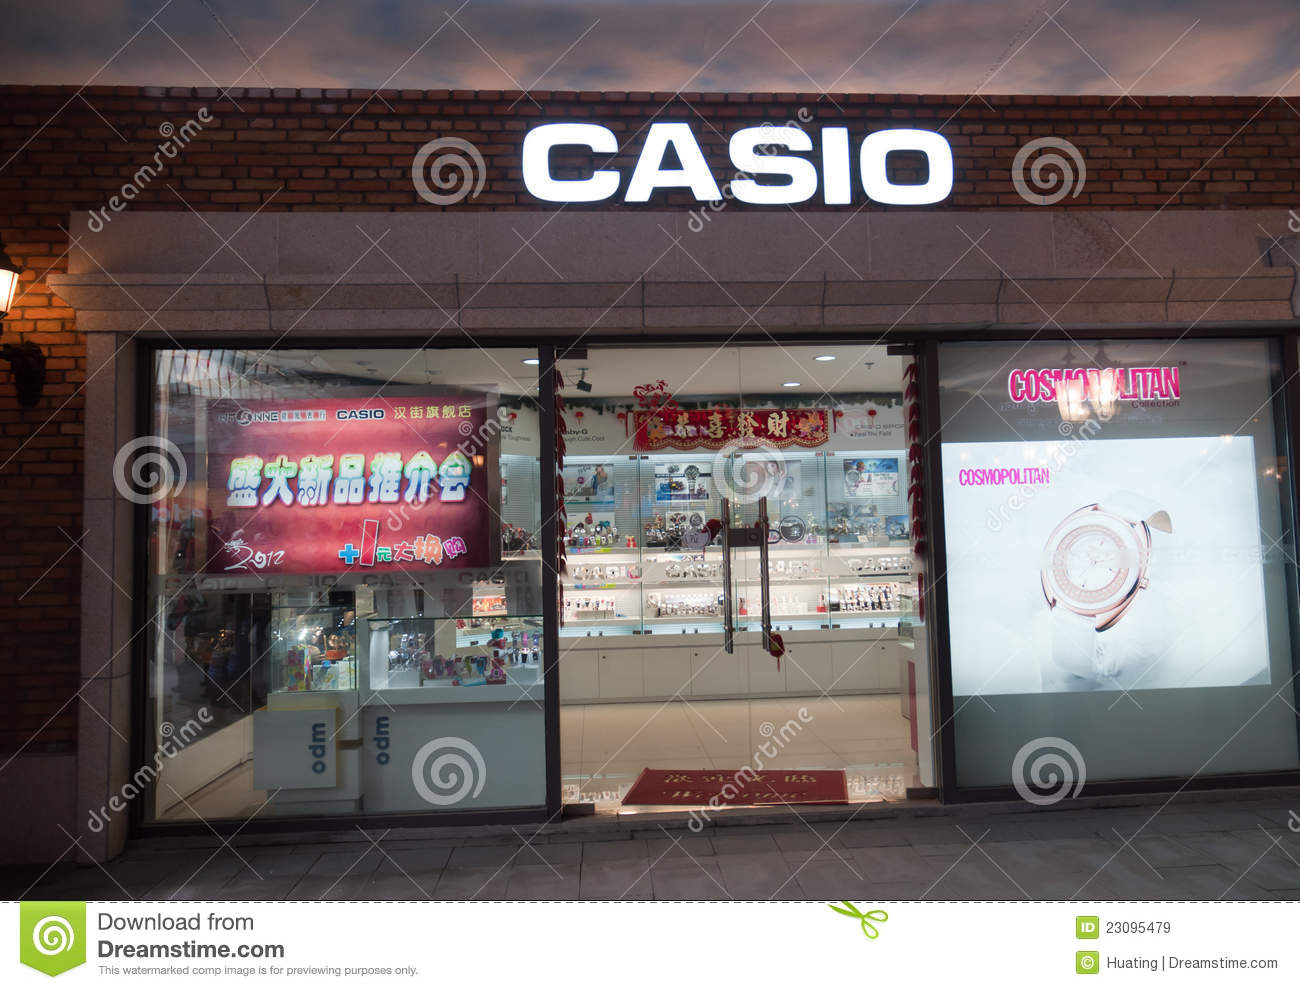 71d308fcf3e1 Casio shop at Han street editorial stock image. Image of price ...